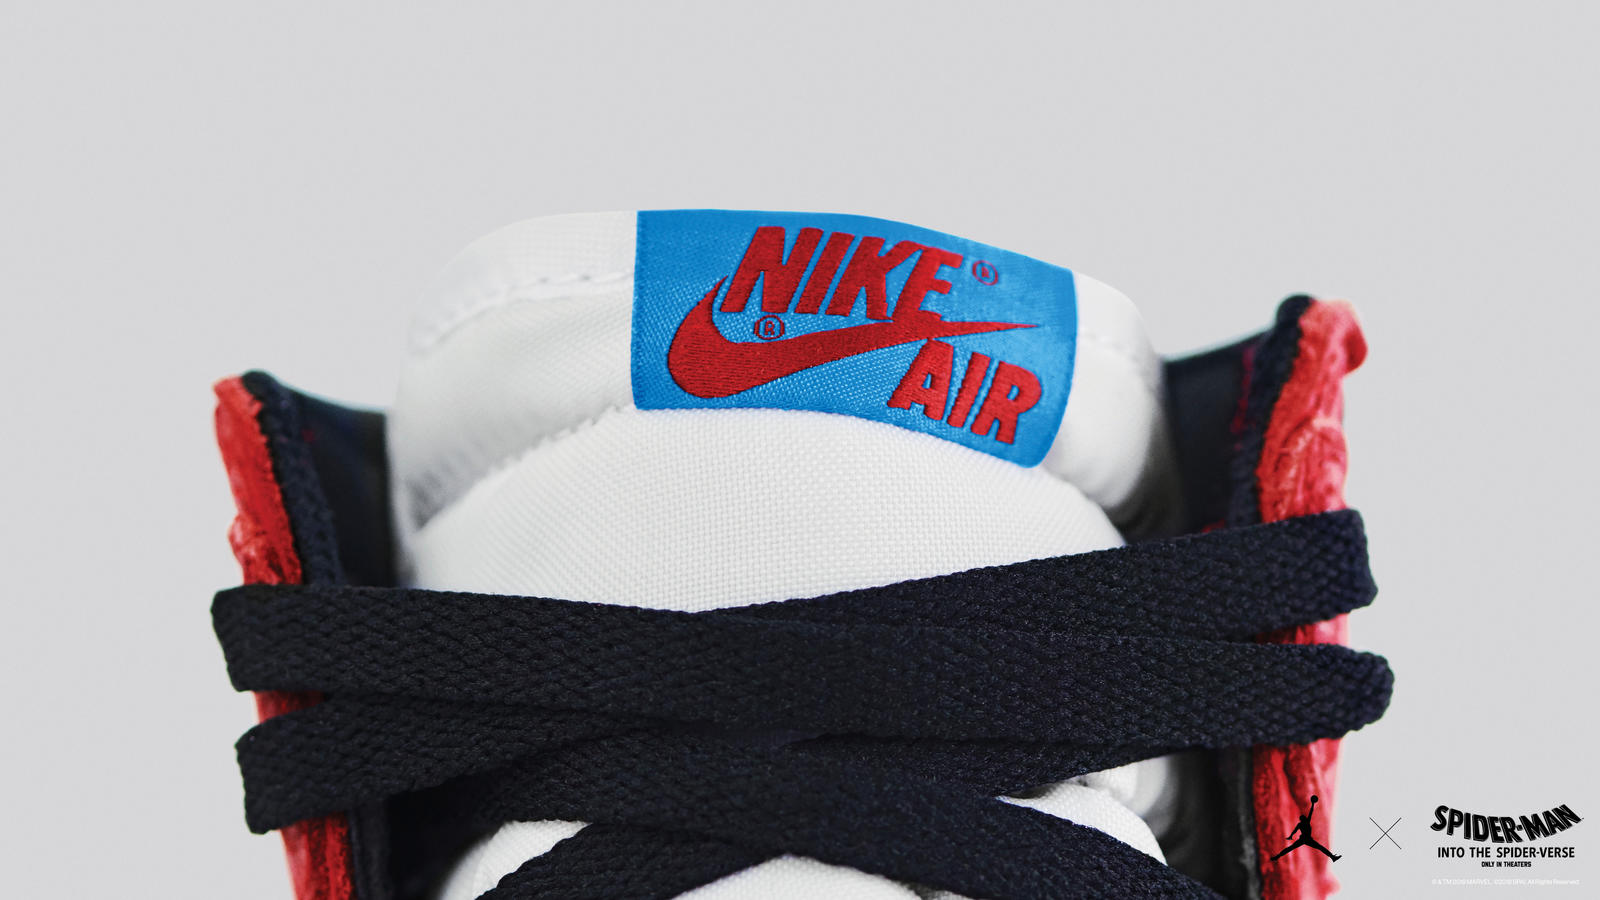 Air Jordan 1 Origin Story Nike News